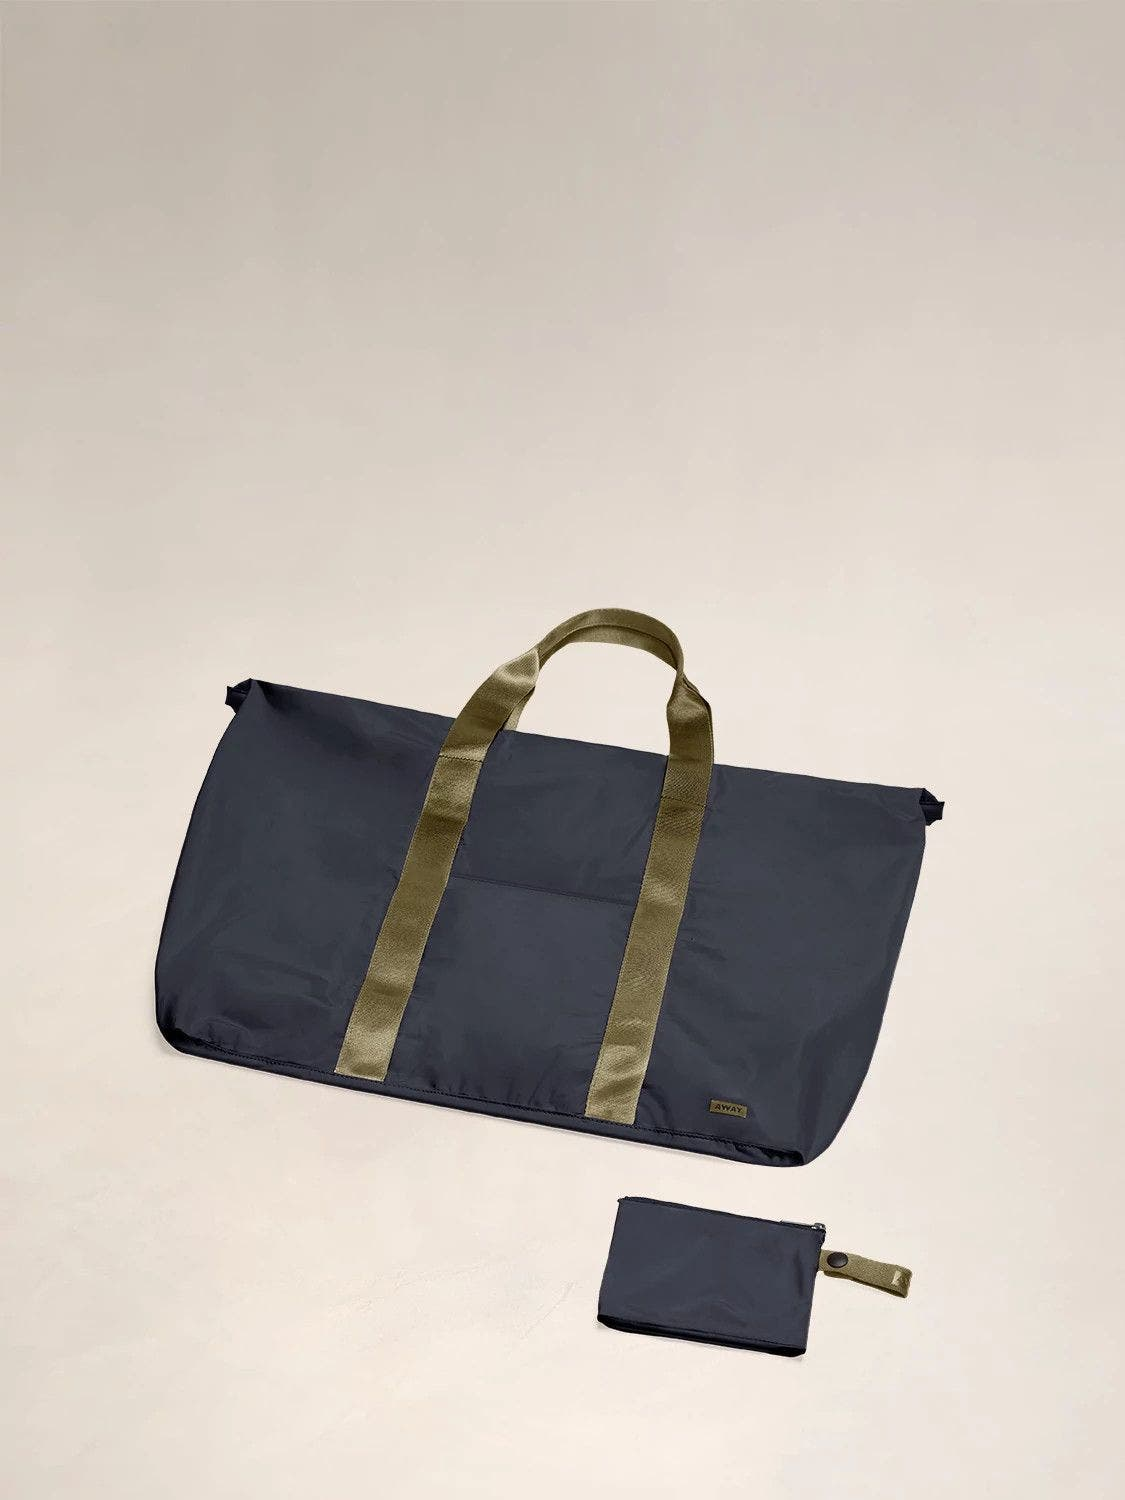 Flat view of the Away packable carryall in the color navy.